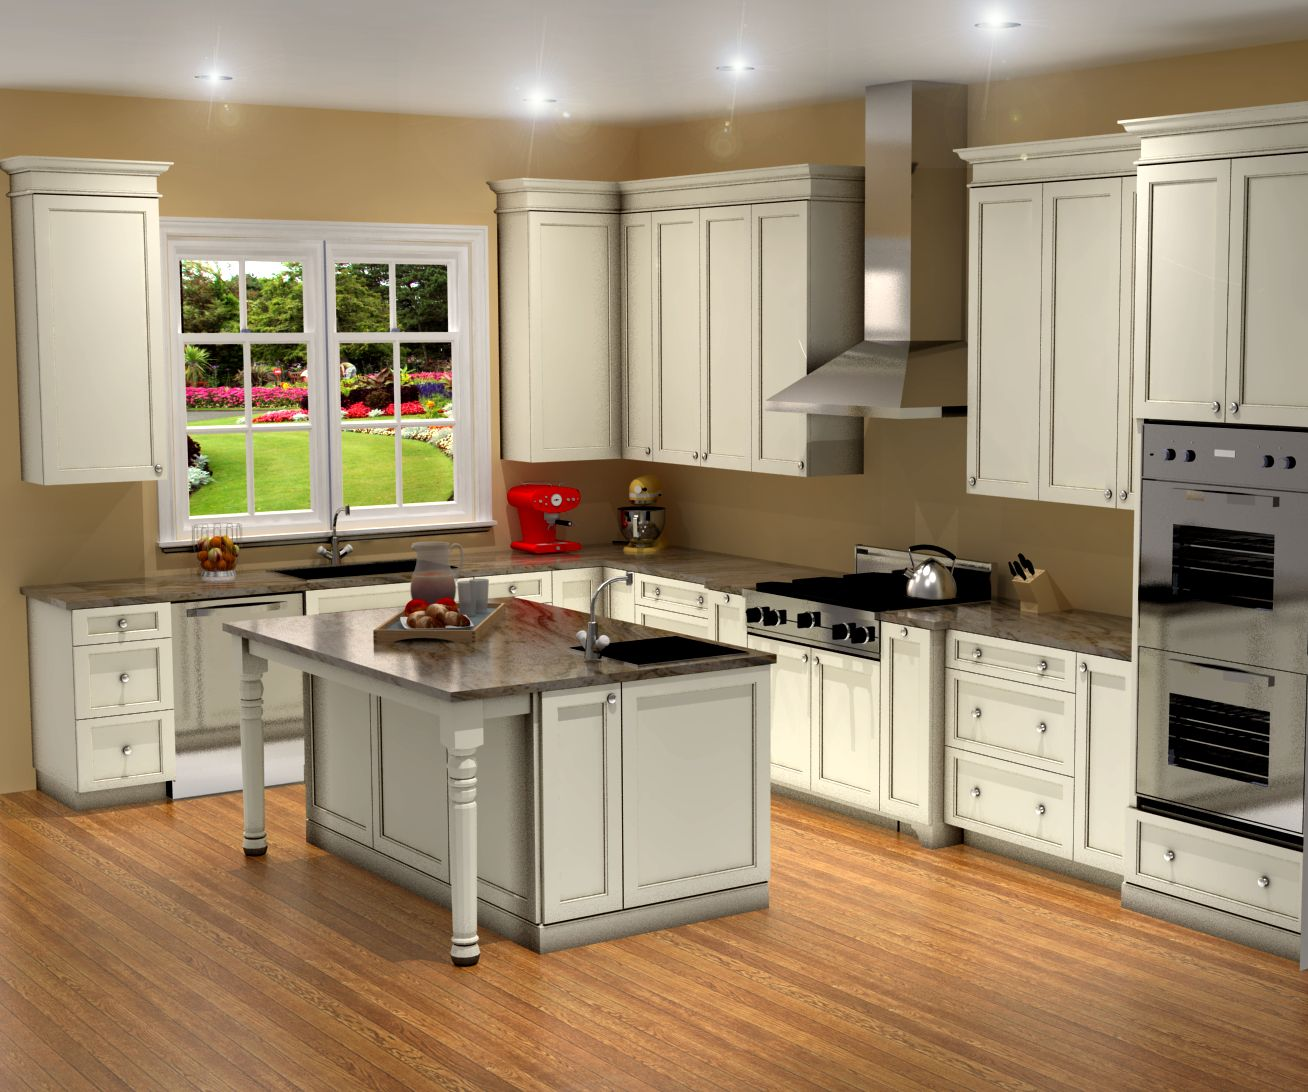 Traditional white kitchen design 3d rendering nick for Kitchen styles and designs